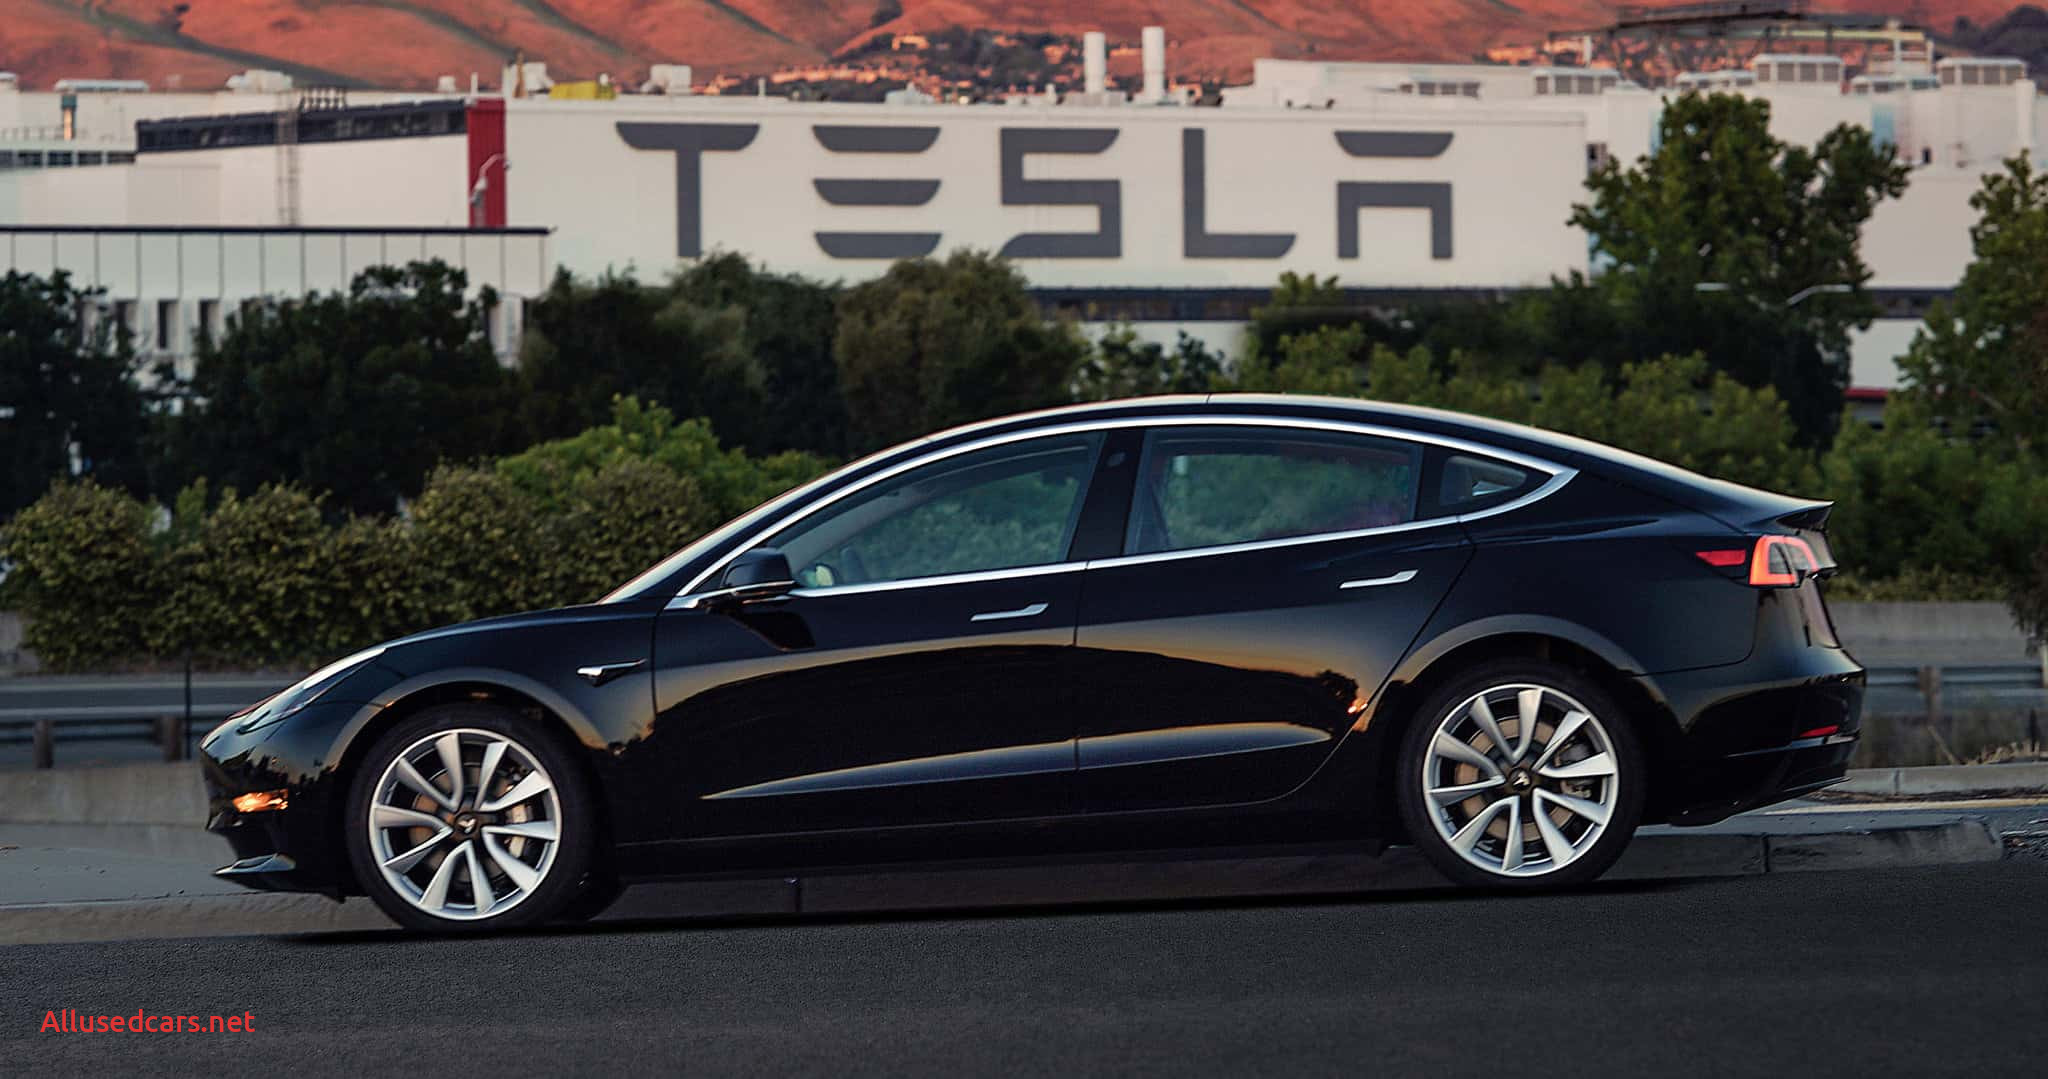 Tesla Stock Projection Inspirational Tesla Stock Price Hits Record Close On Increased Sales In